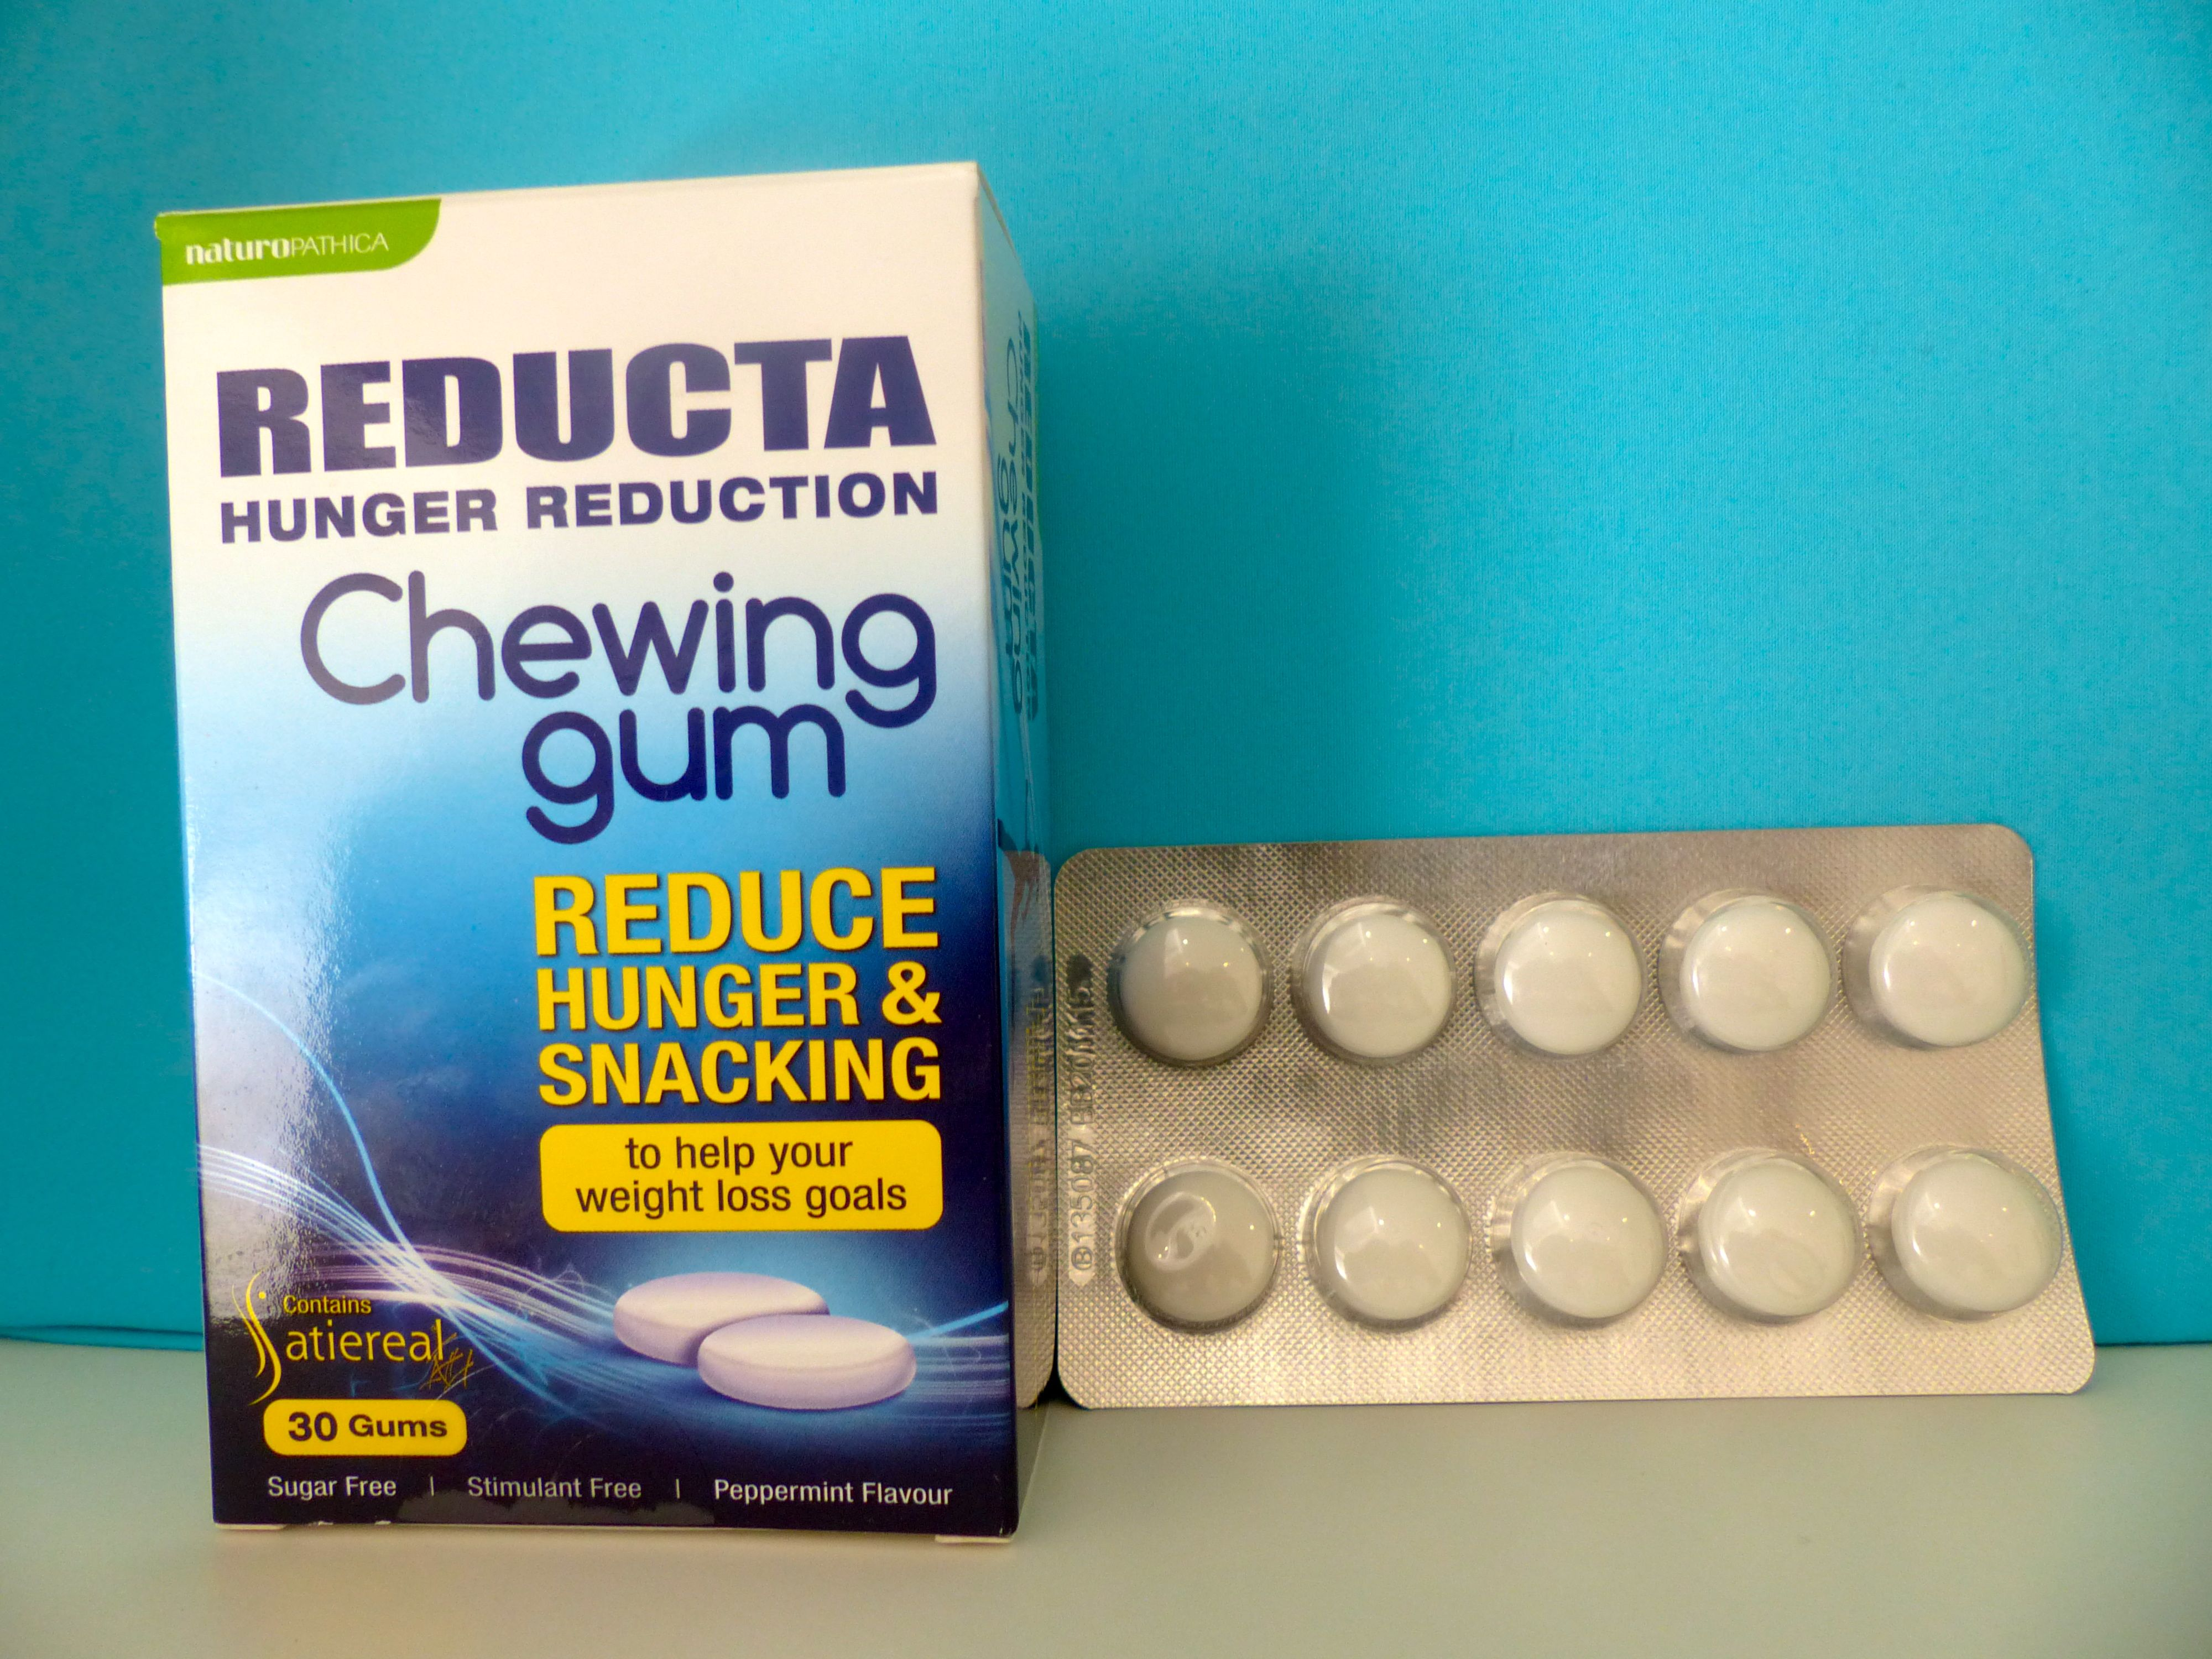 Reducta Chewing Gum